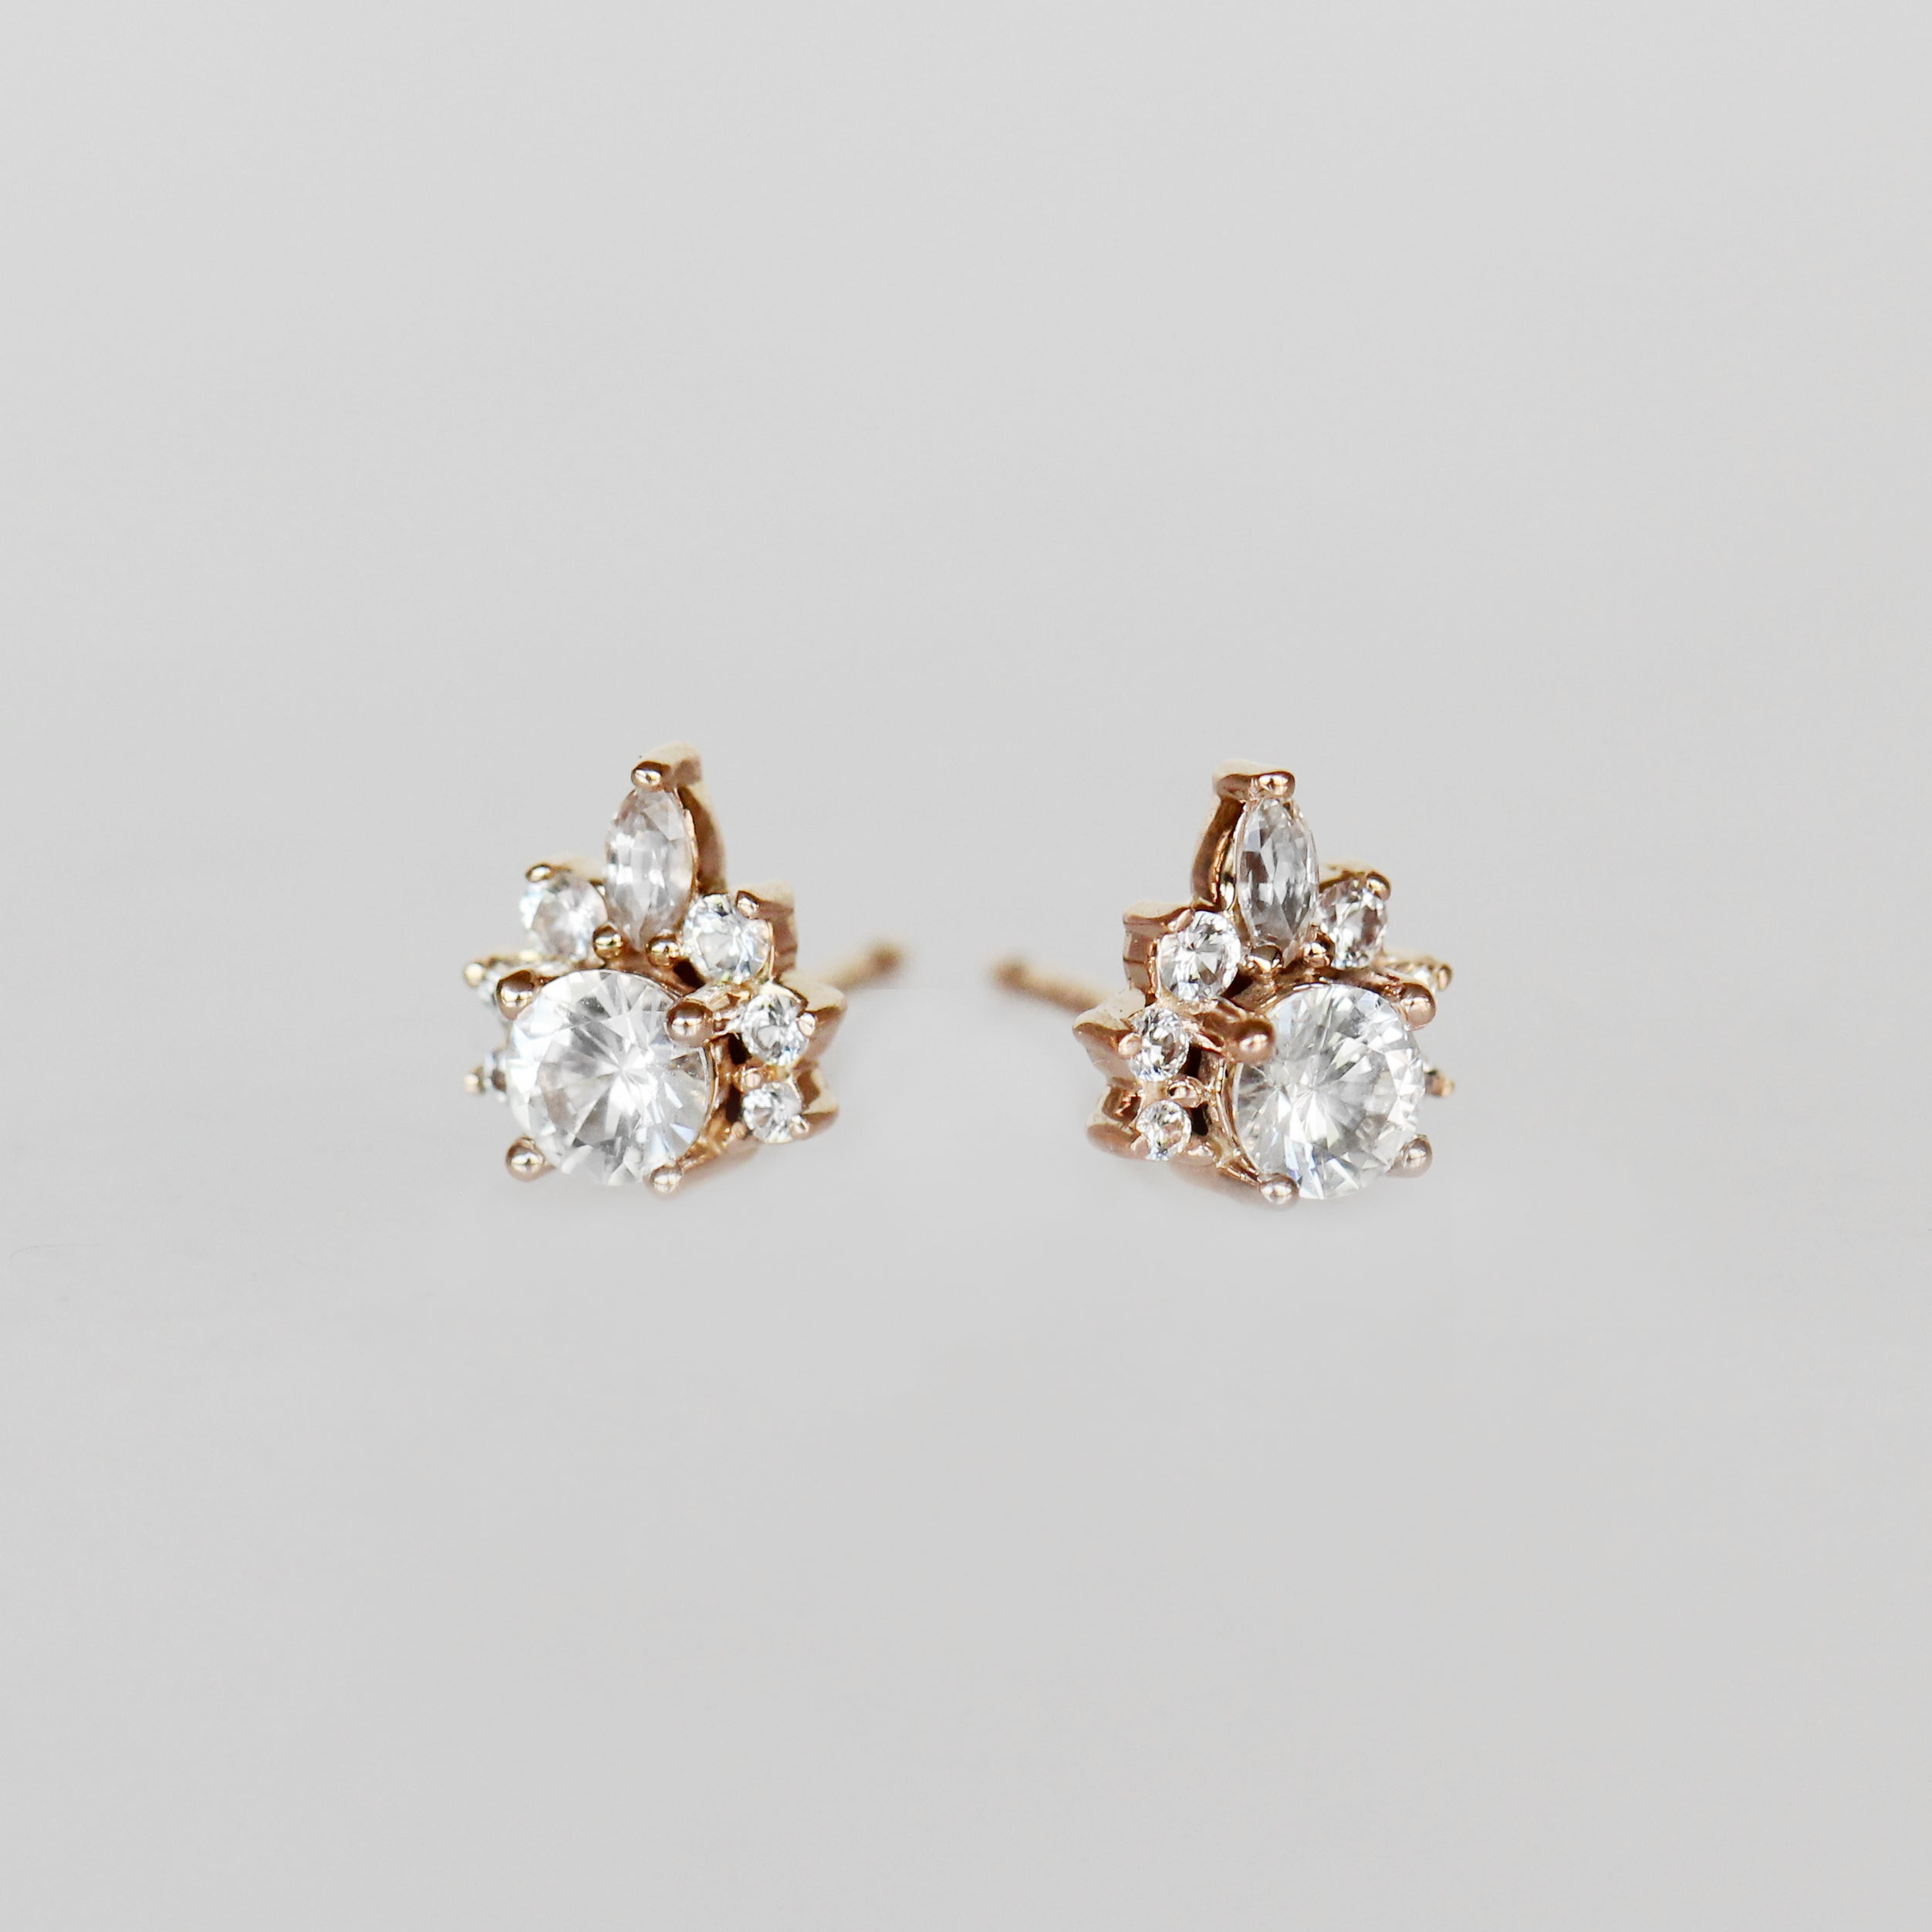 Zoe Earrings with White Sapphires - Your Choice of Gold - Celestial Diamonds ® by Midwinter Co.